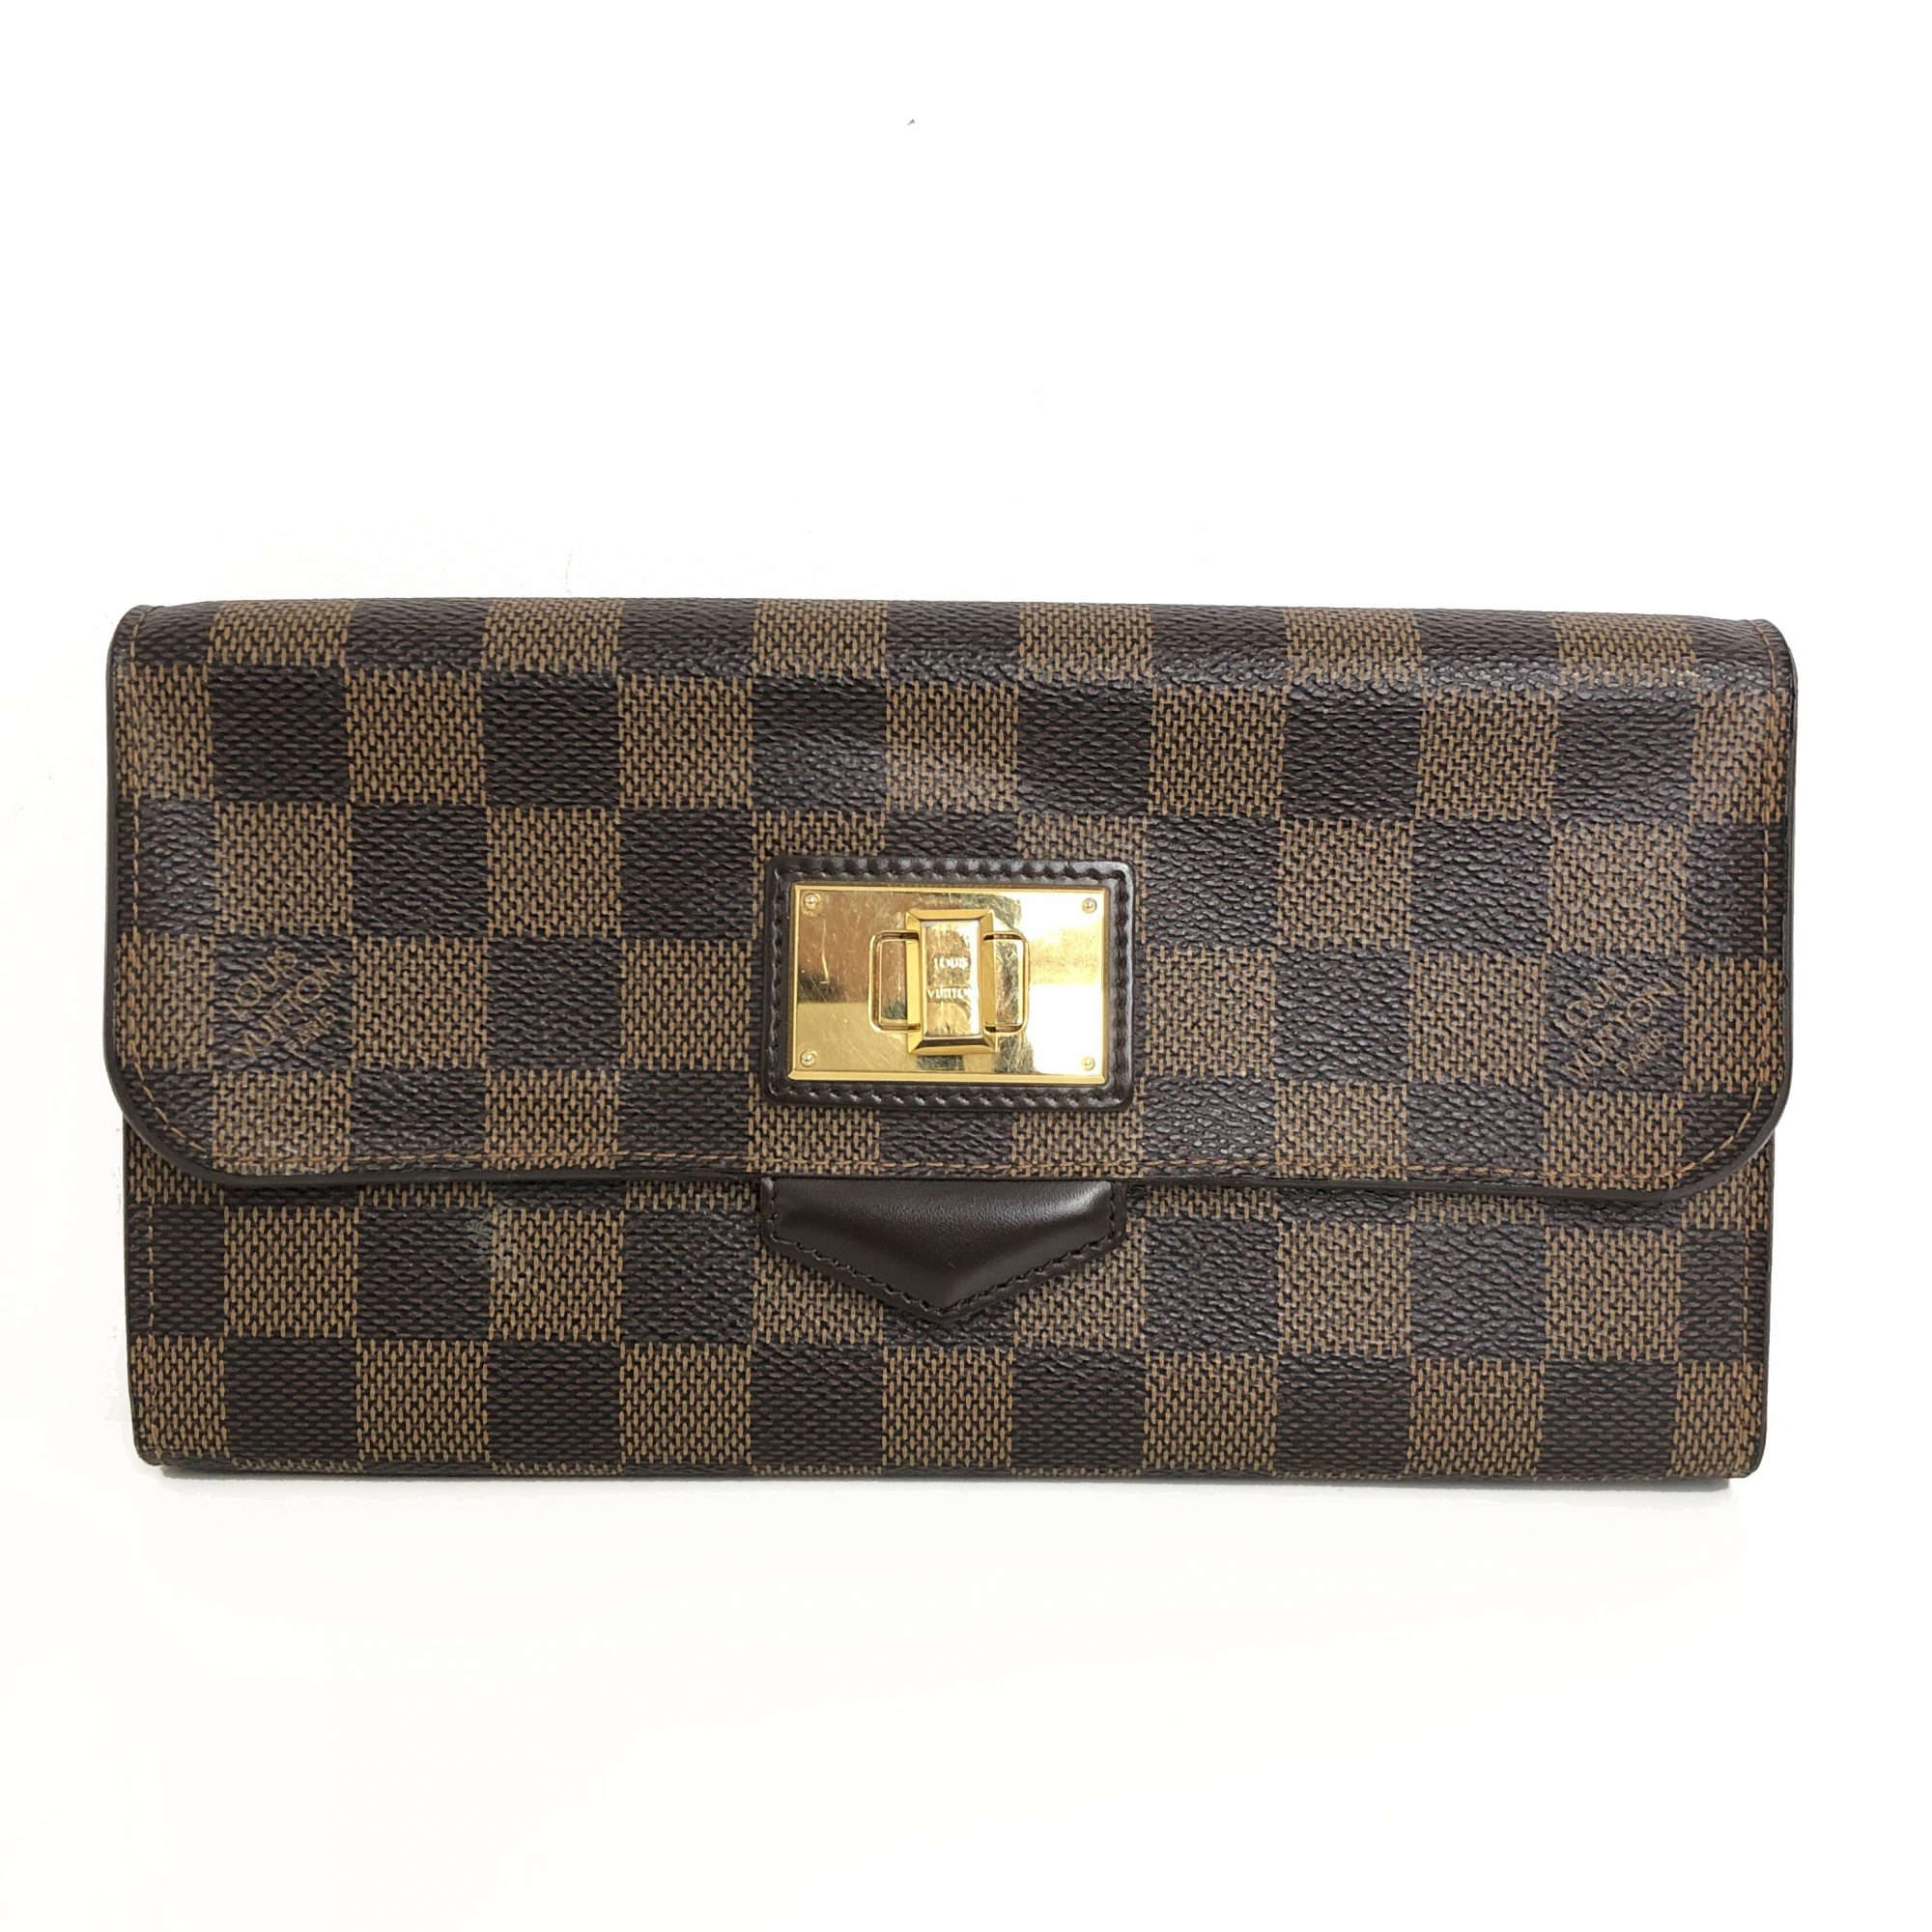 7ba29b2257e5 Louis Vuitton Damier Ebene Roseberry Wallet - My Luxury Bargain